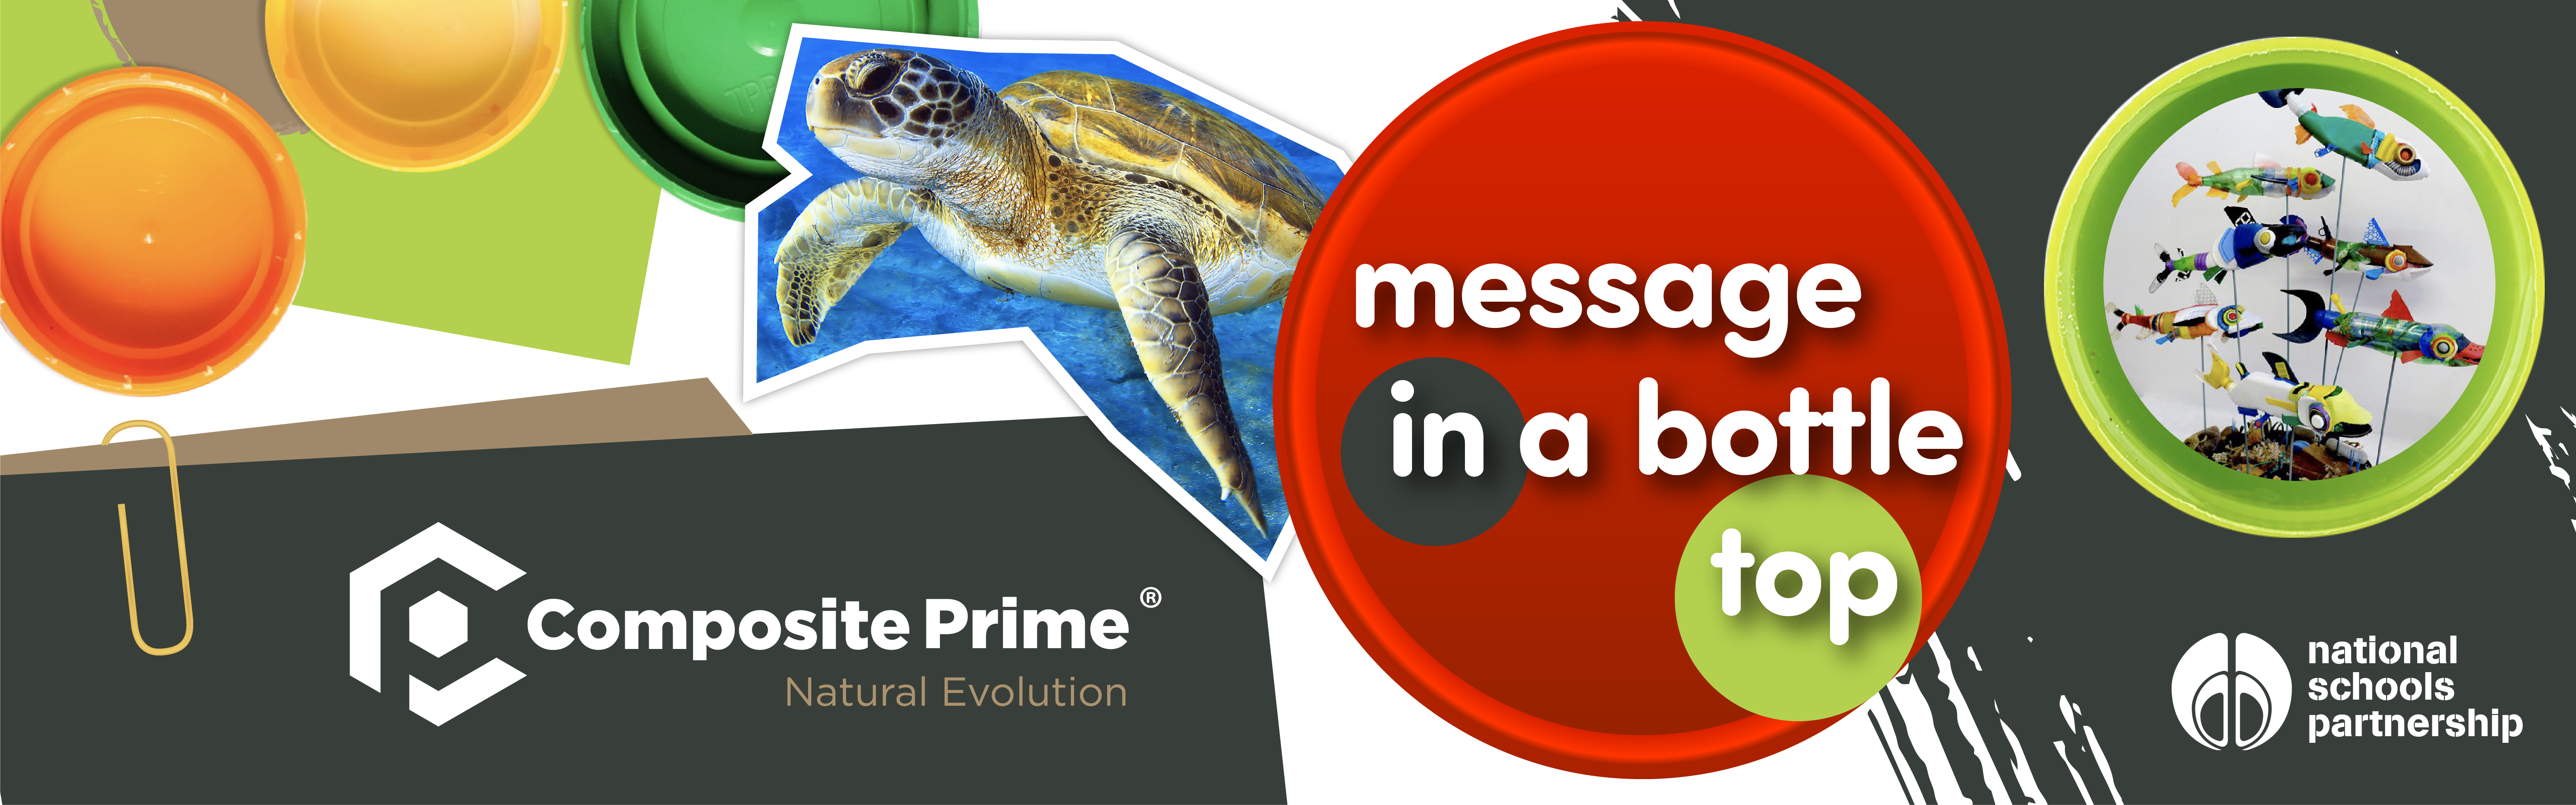 Colourful header image with turtle and bottle top